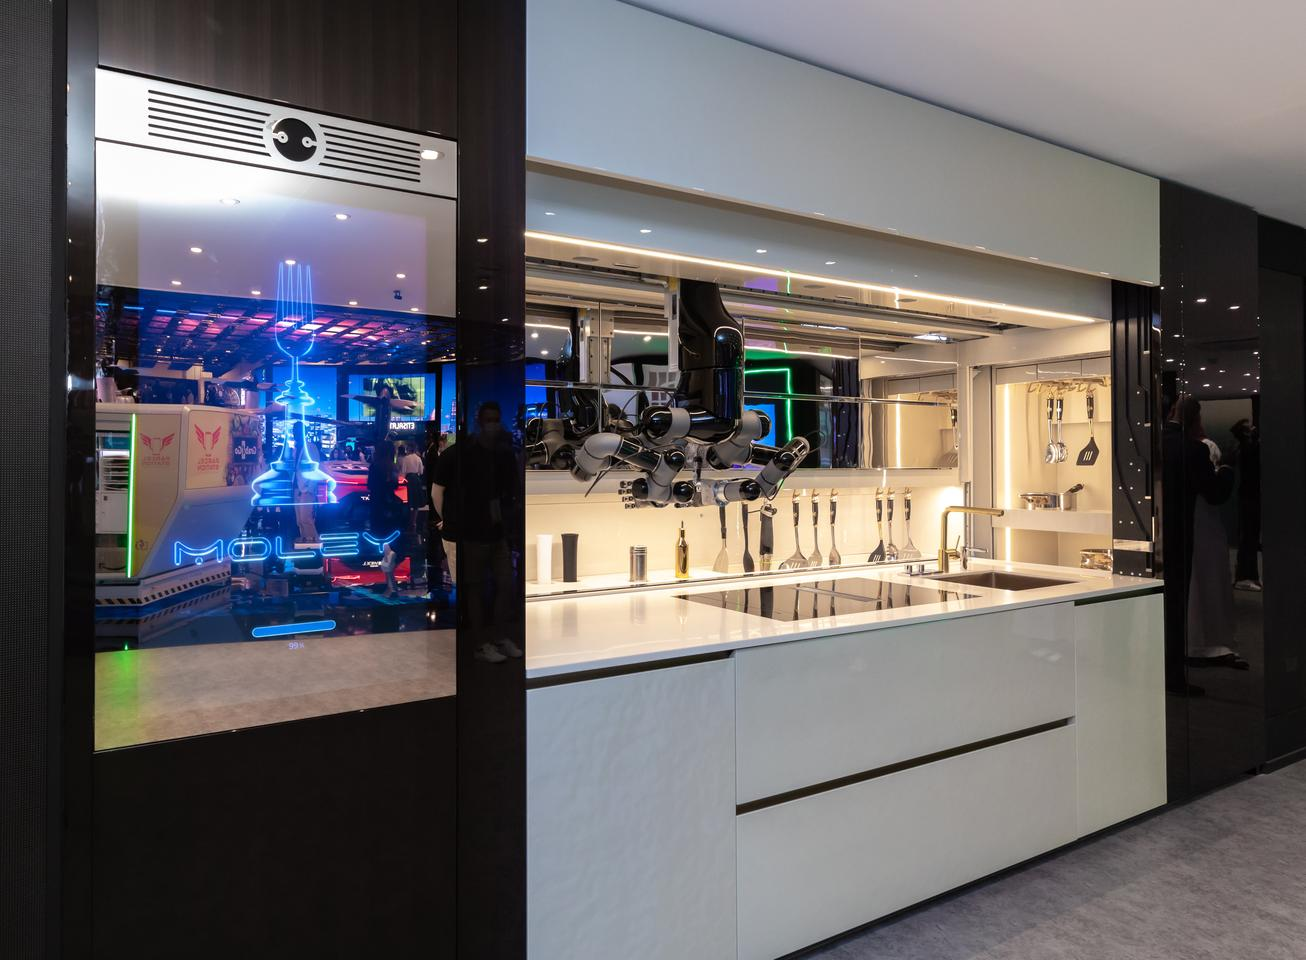 The Moley R kitchen is a complete installation with appliances, robotics, GUI, cabinets and cookware